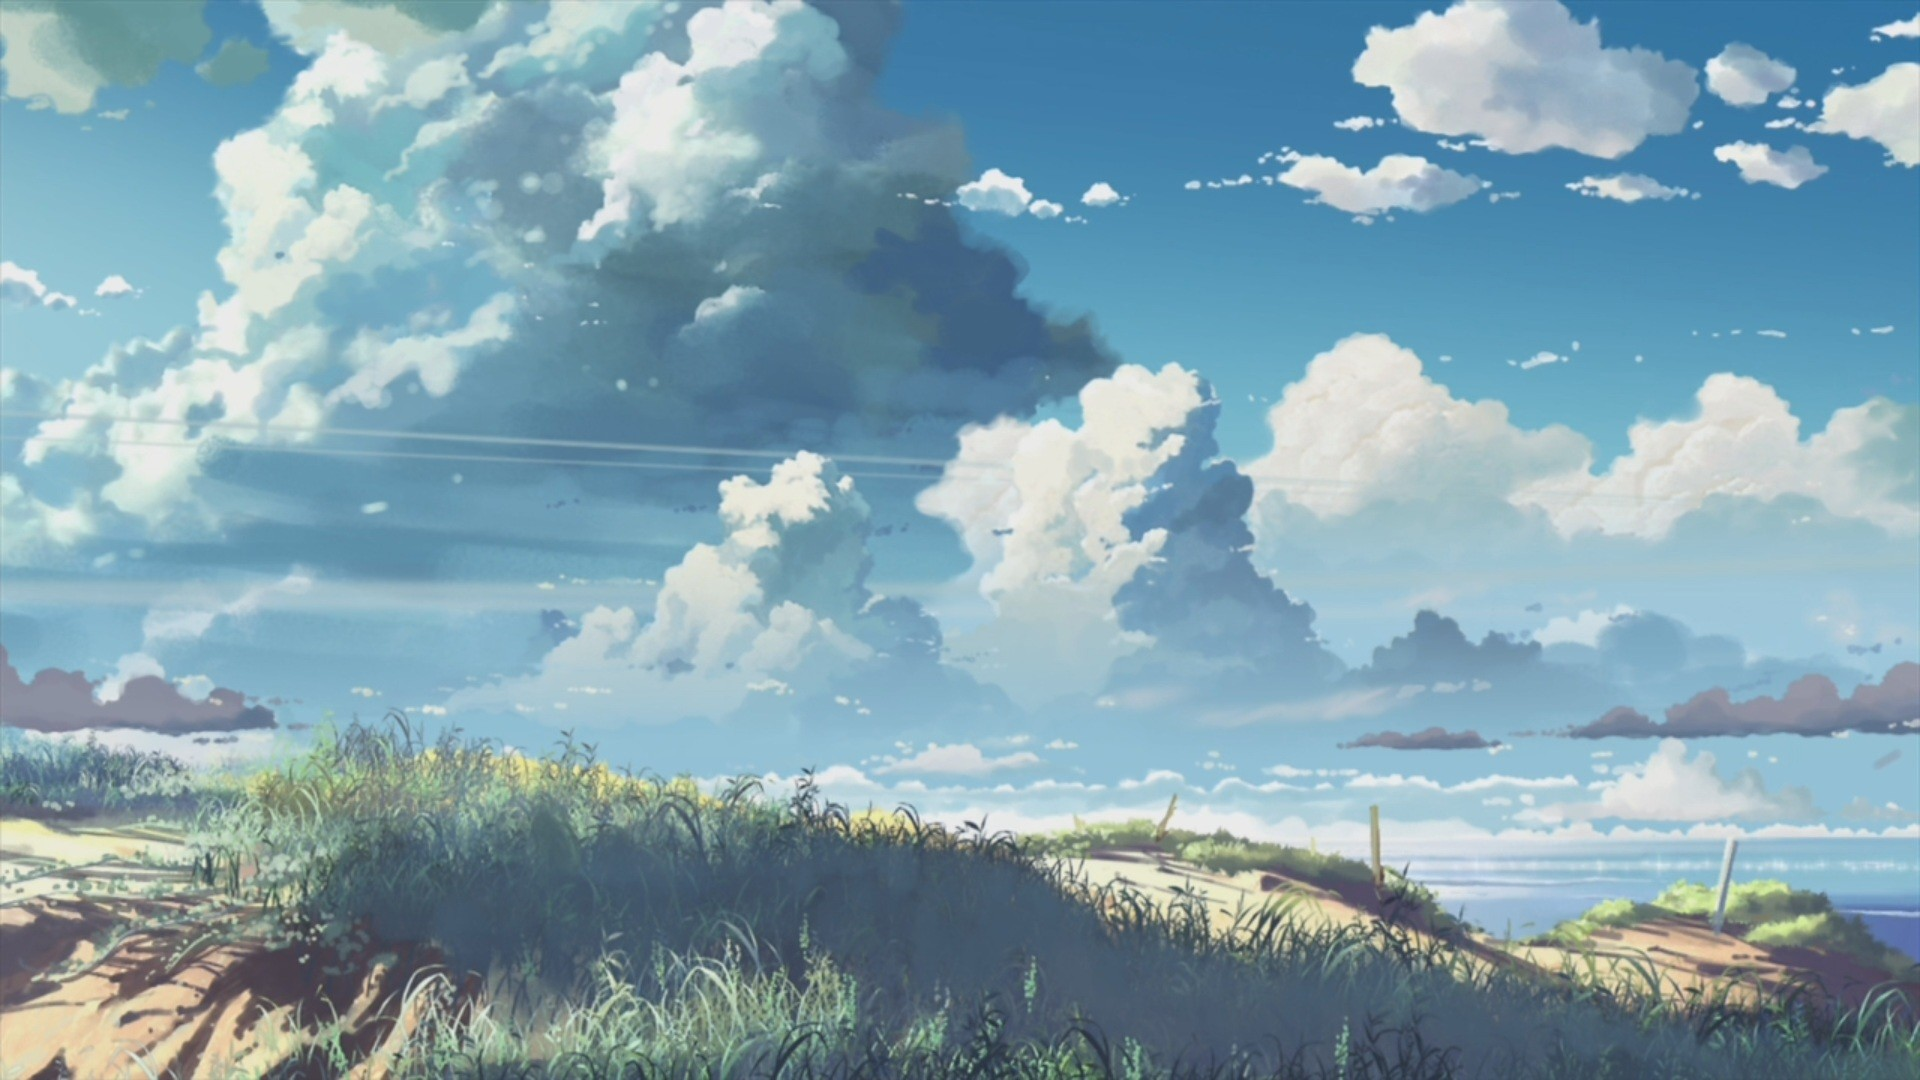 Image for Anime Scenery Background Wallpaper